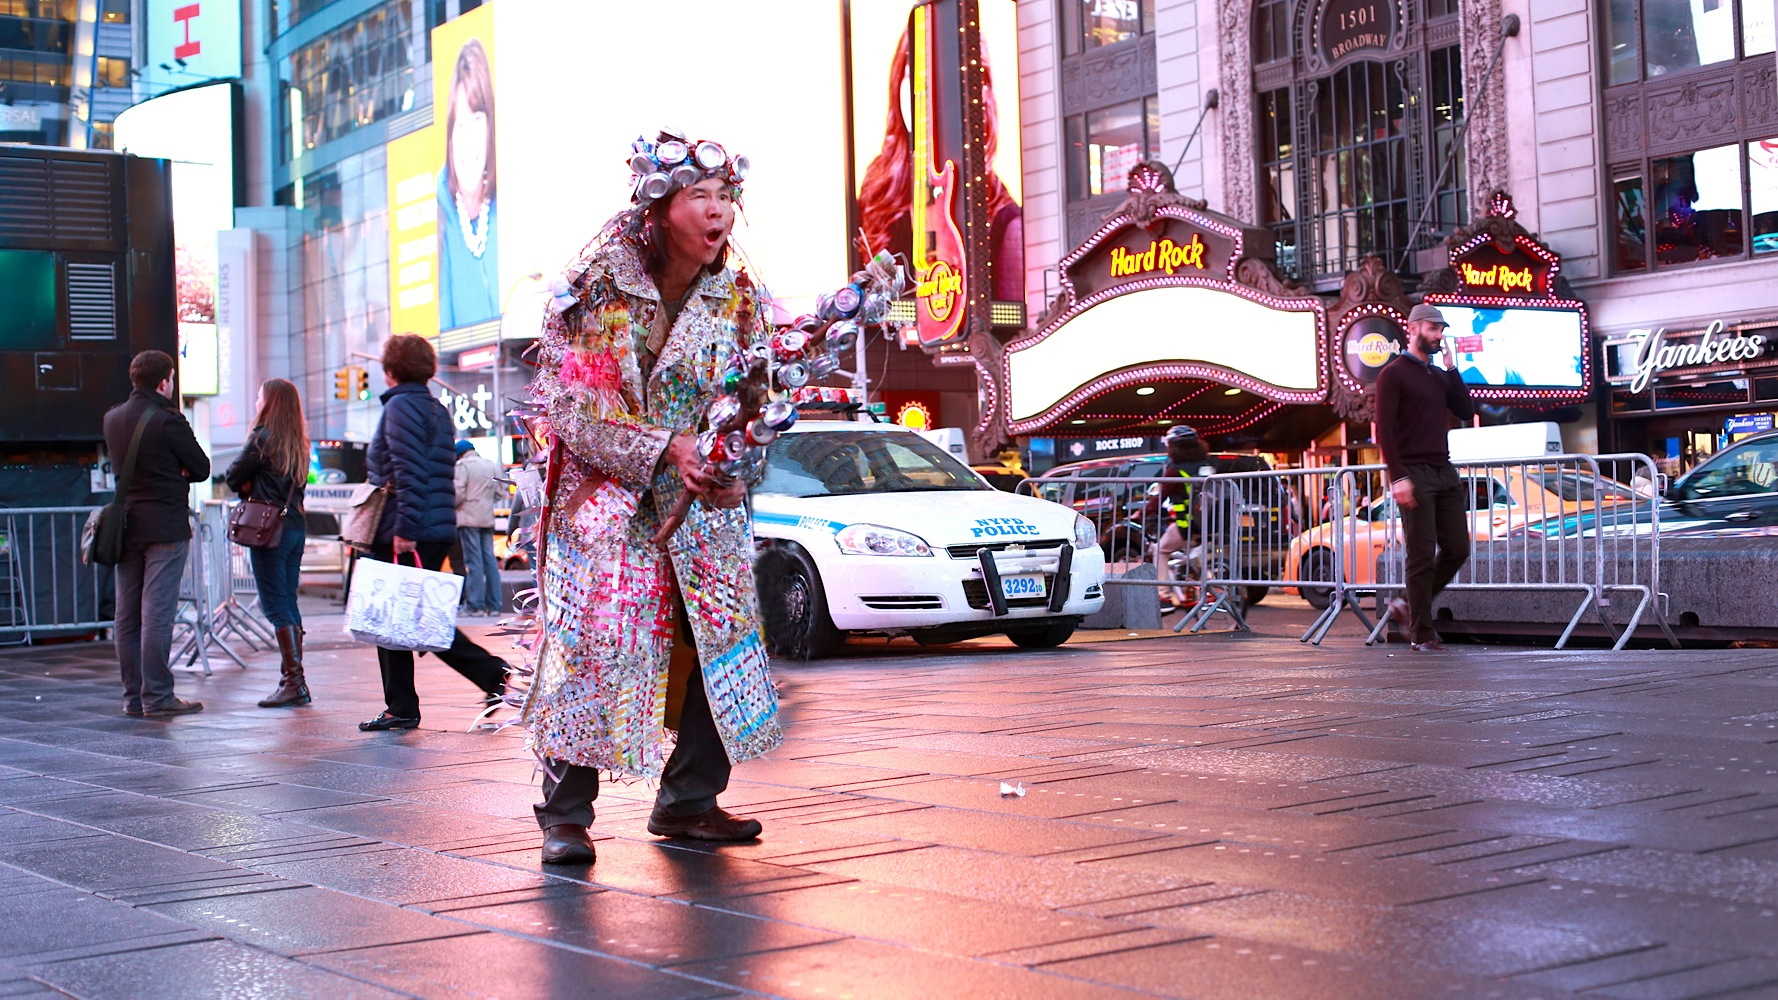 Multidisciplinary artist Chin Chih Yang performs in New York City's Time Square.